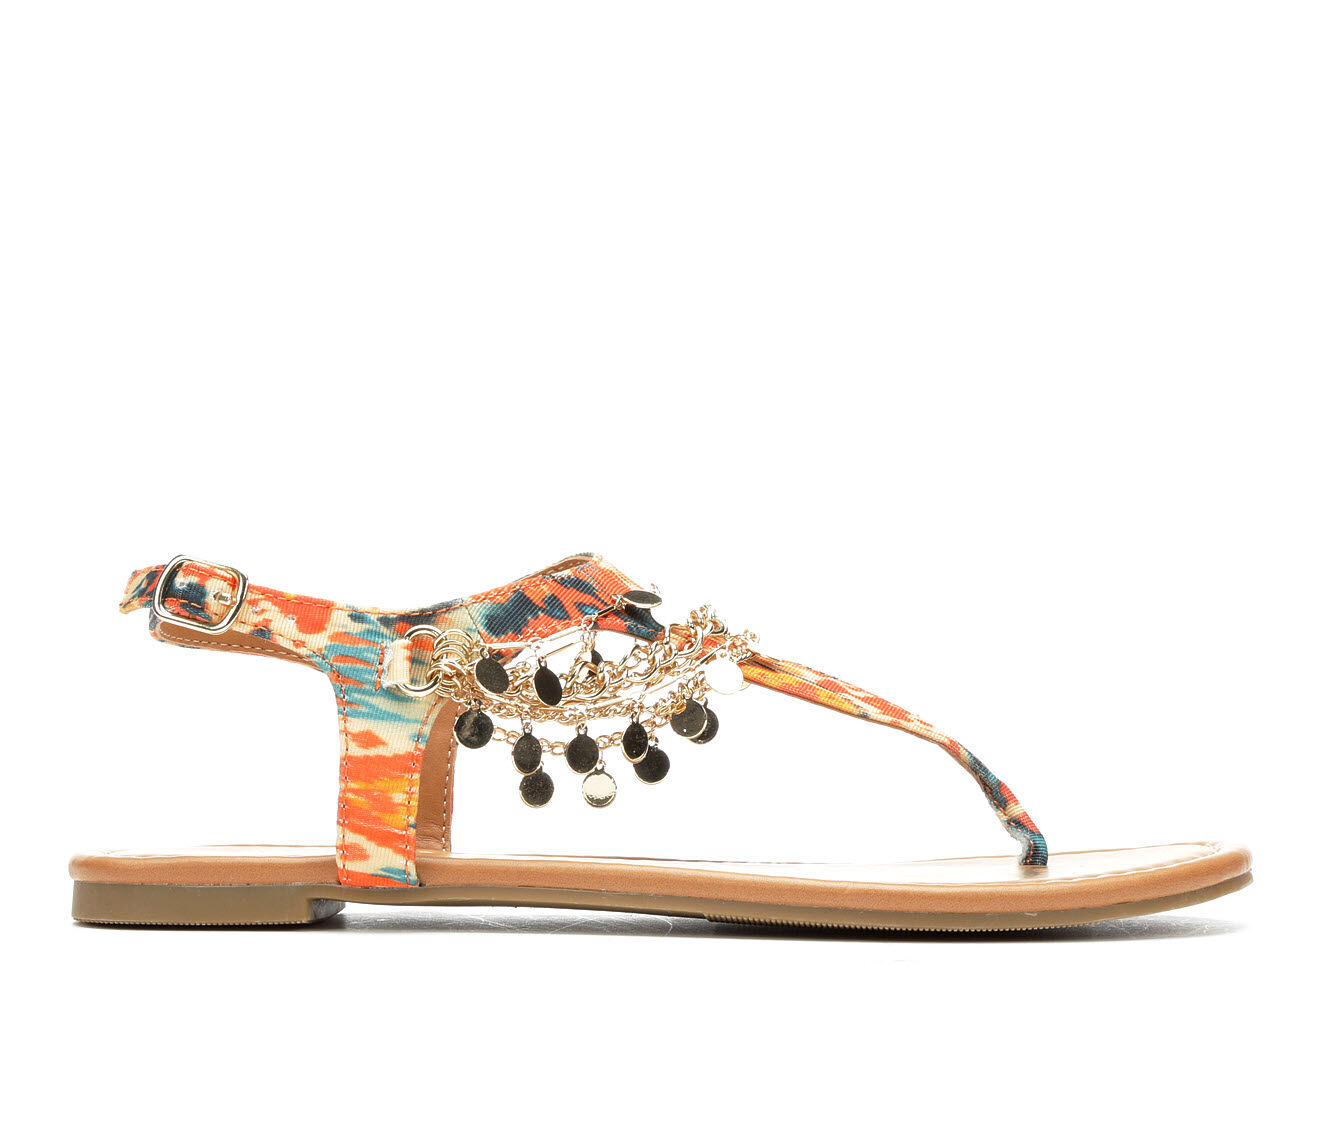 purchase new style Women's Y-Not Above Sandals Orange Aztec